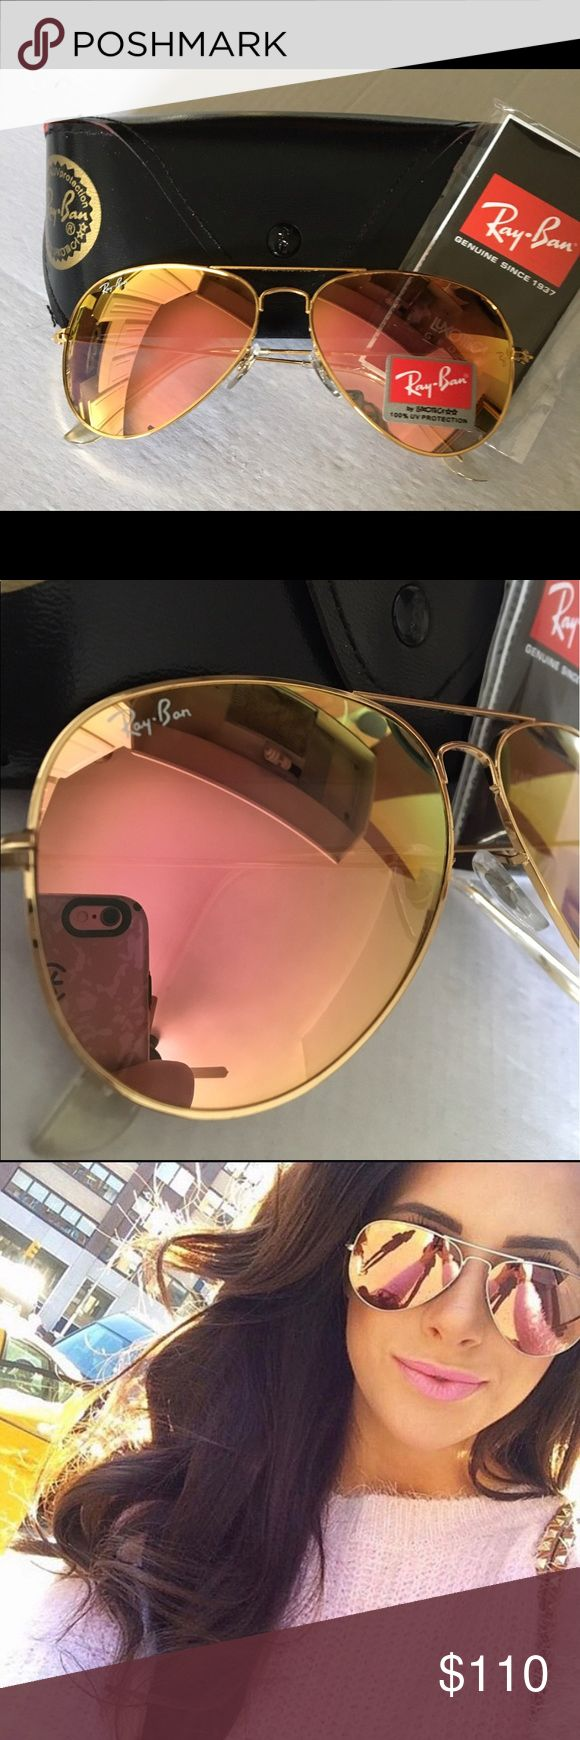 AUTHENTIC  Ray Ban Sunglasses Pink / Copper AUTHENTIC Ray Ban Sunglasses . Pink / copper lens with Gold frame. Brand new !! 58mm. Every gal should view this spring & summer through rose  color glasses ❤️. You will receive Ray Ban Sunglasses , Ray Ban Box , Ray Ban cleaning cloth , Ray Ban manual. Ray-Ban Accessories Sunglasses